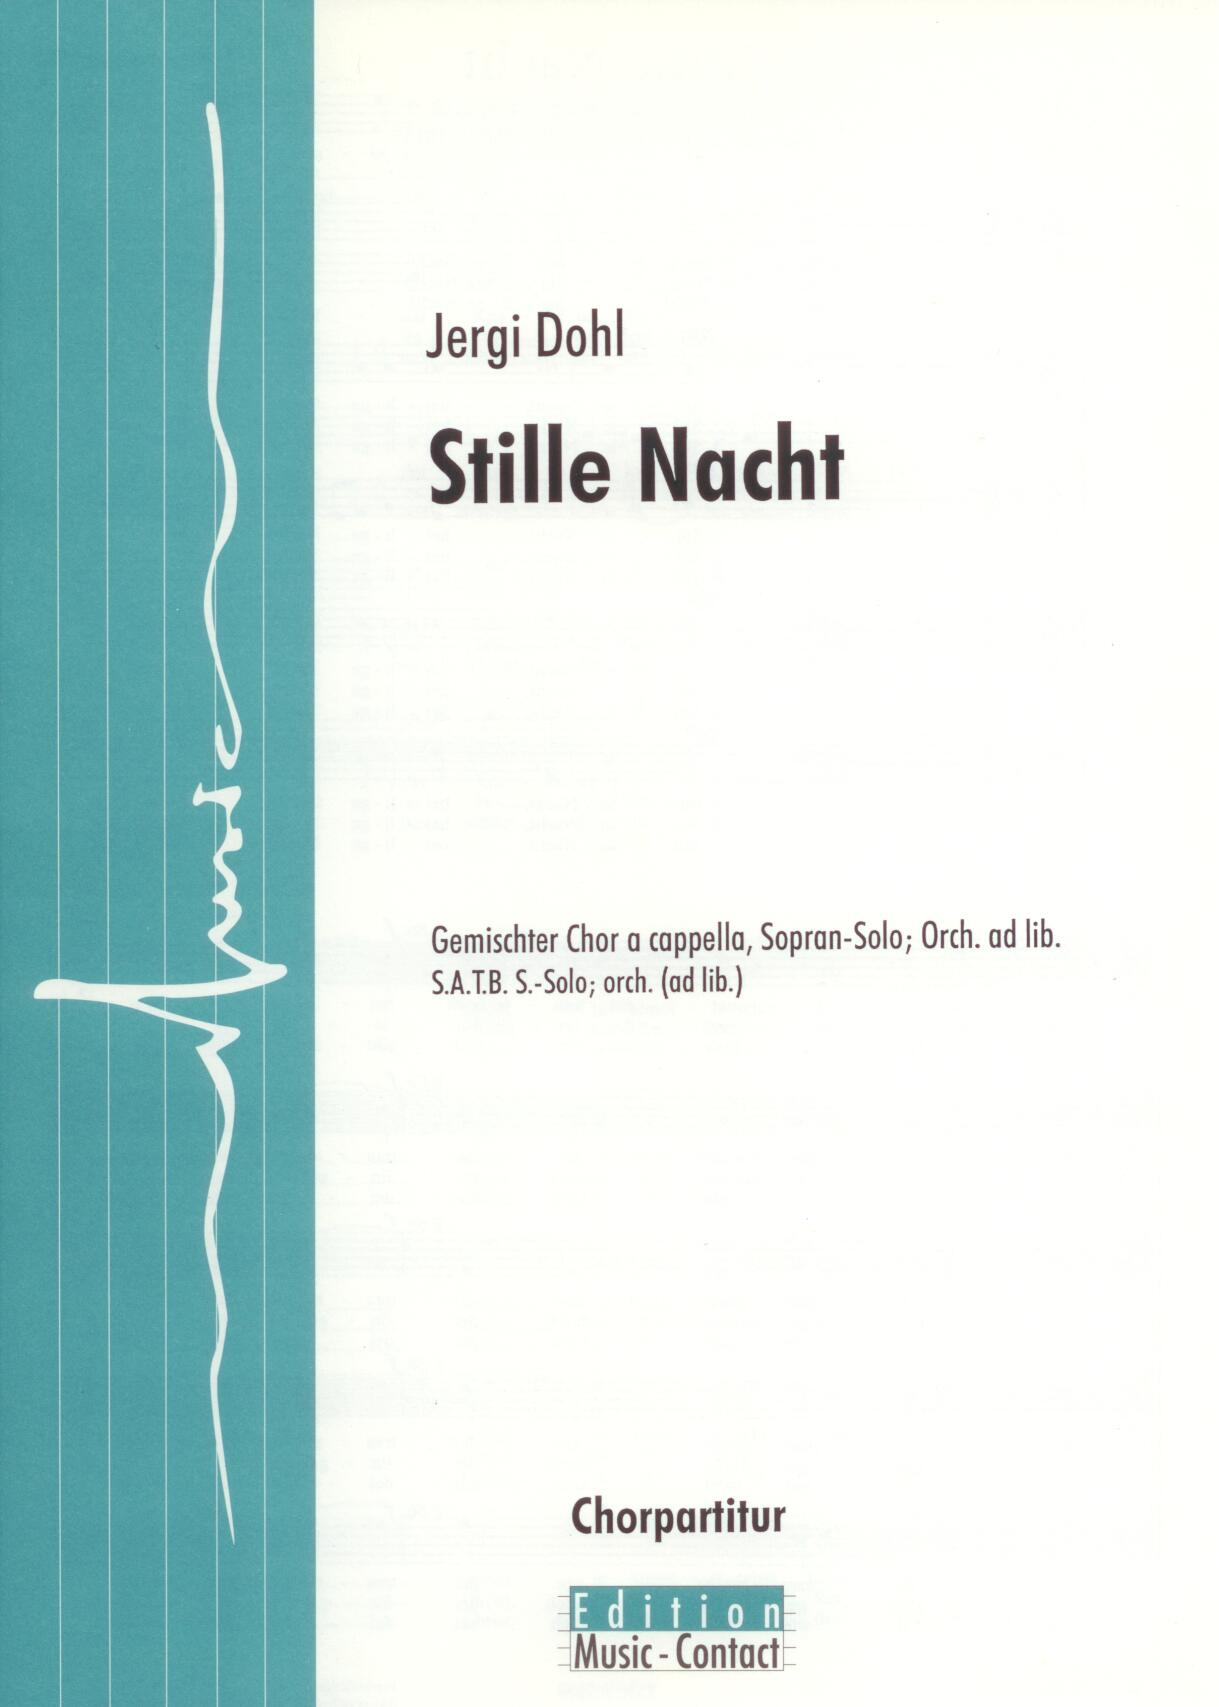 Stille Nacht - Show sample score